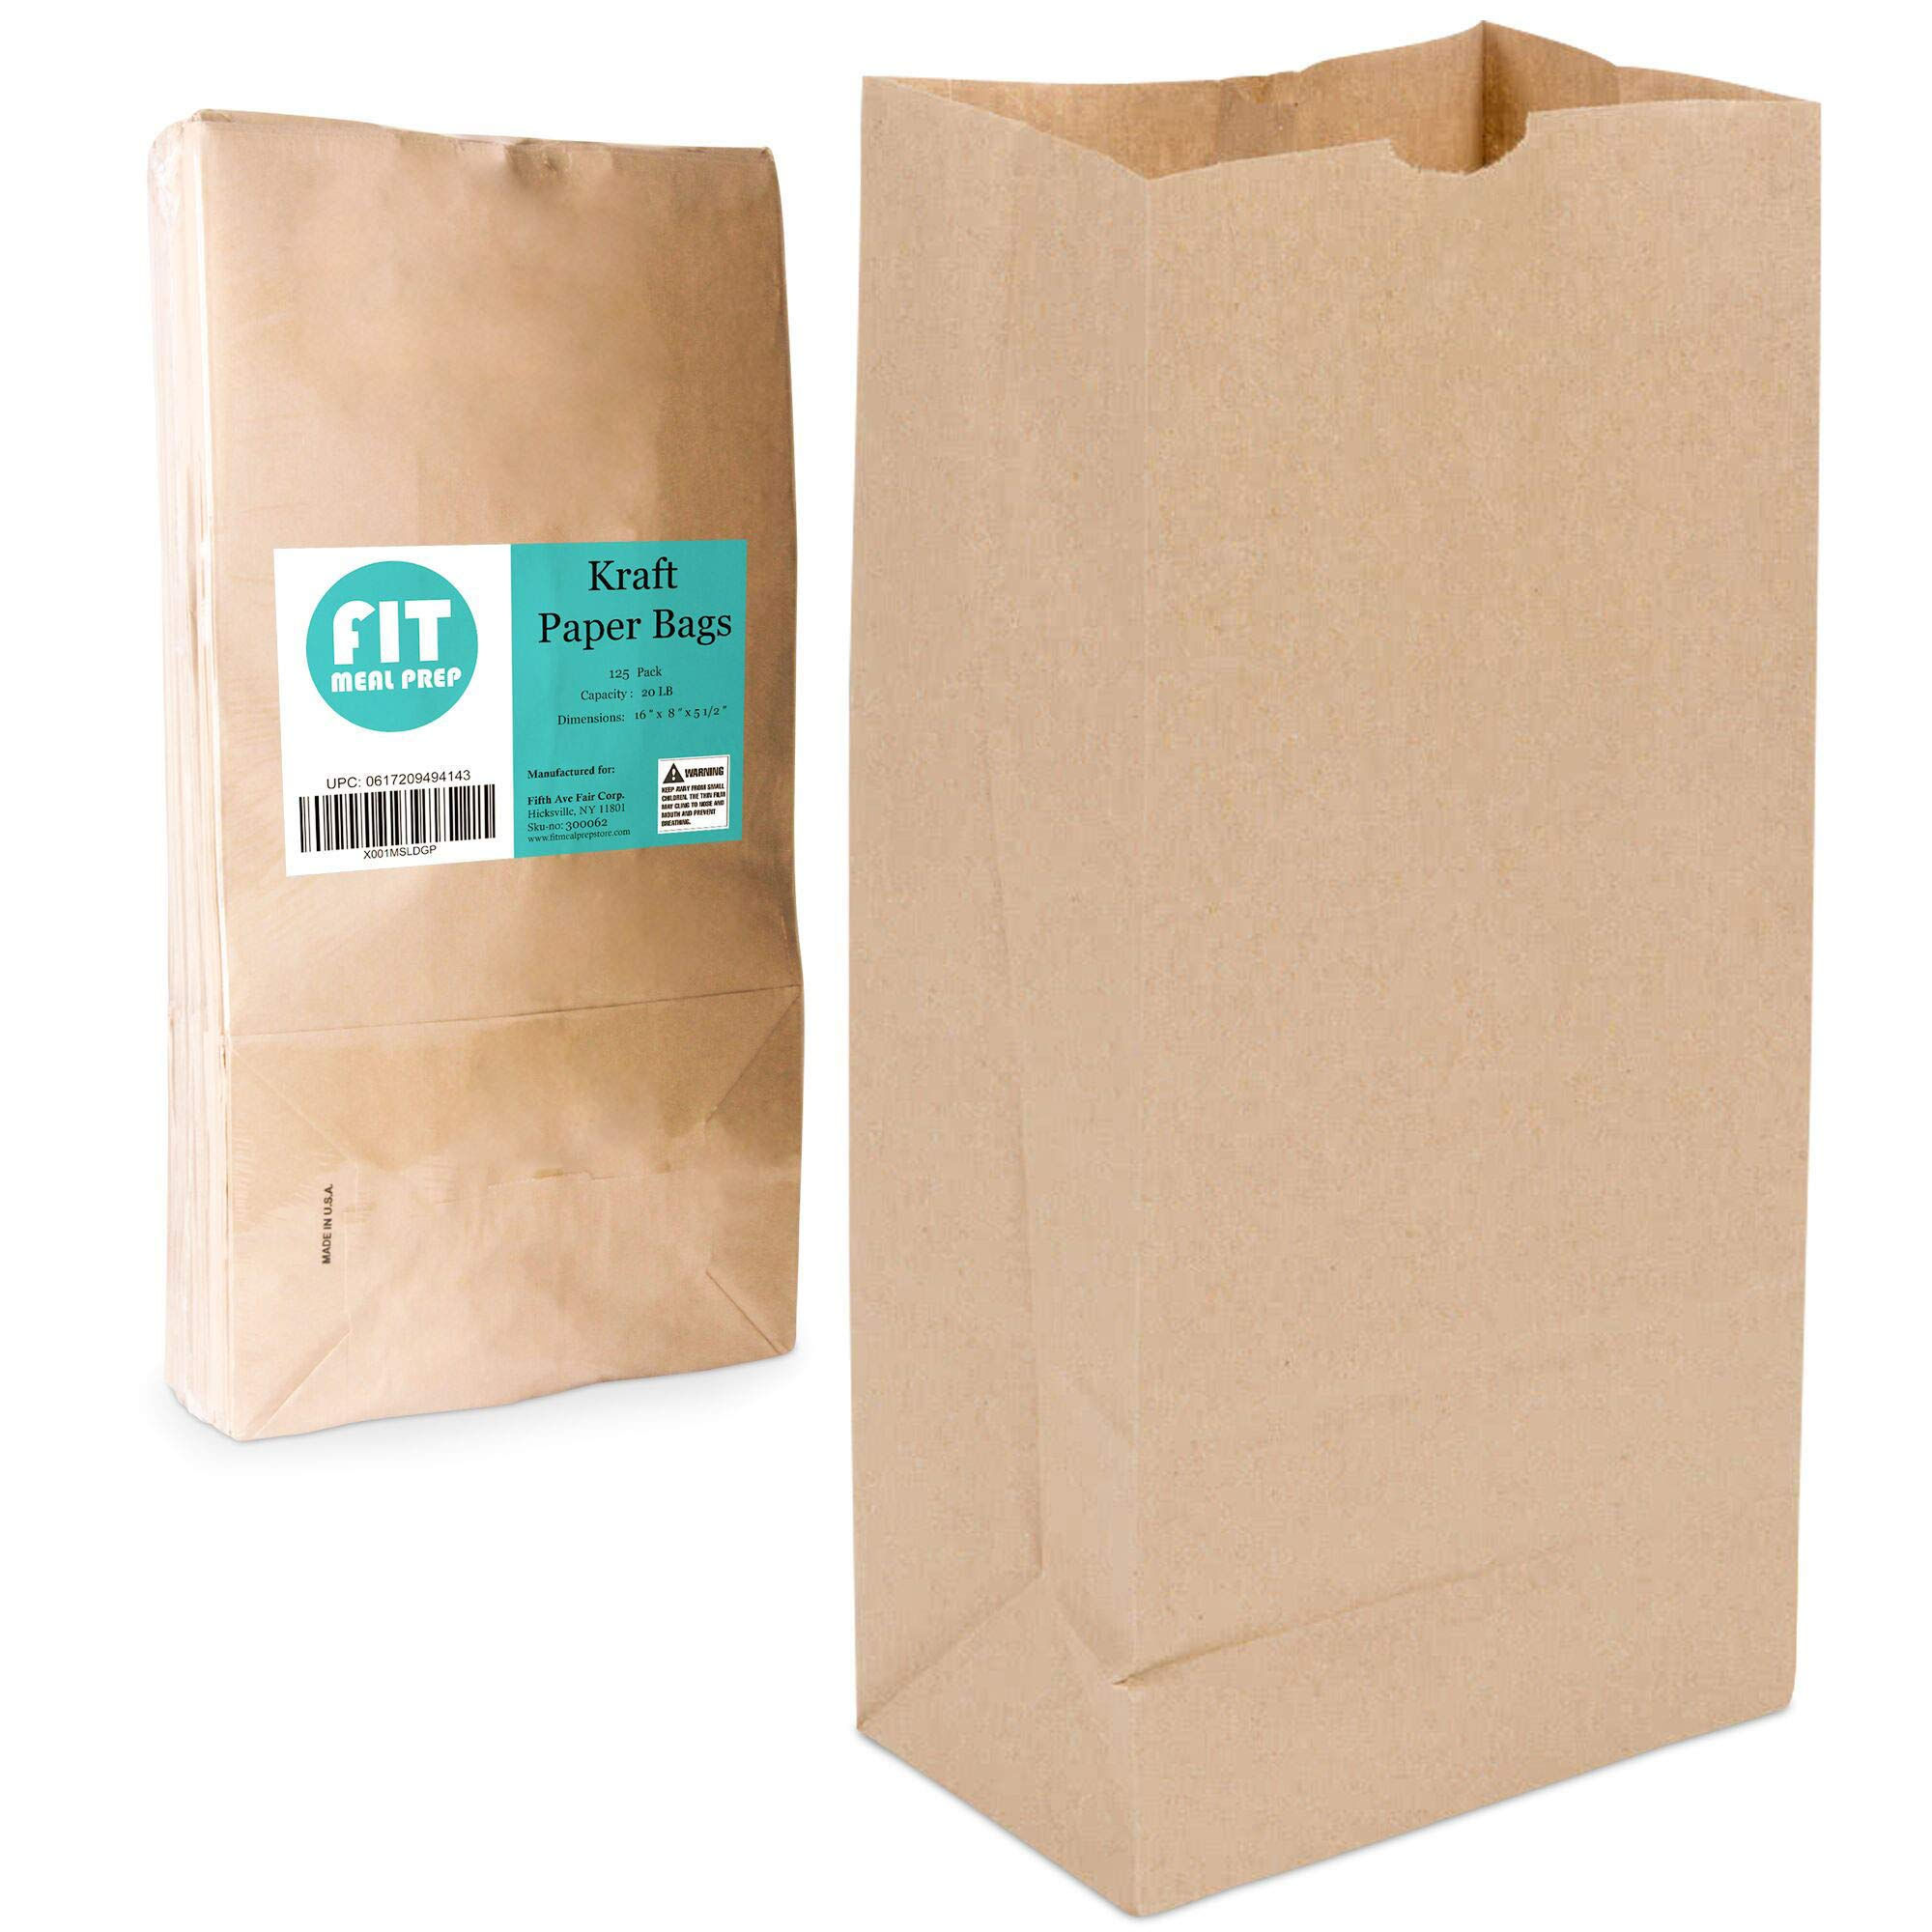 [125 Pack] Heavy Duty Kraft Paper Bags 16 x 8 x 5.5 20 LB Grocery Lunch Retail Shopping Durable Natural Brown Barrel Sack by Fit Meal Prep